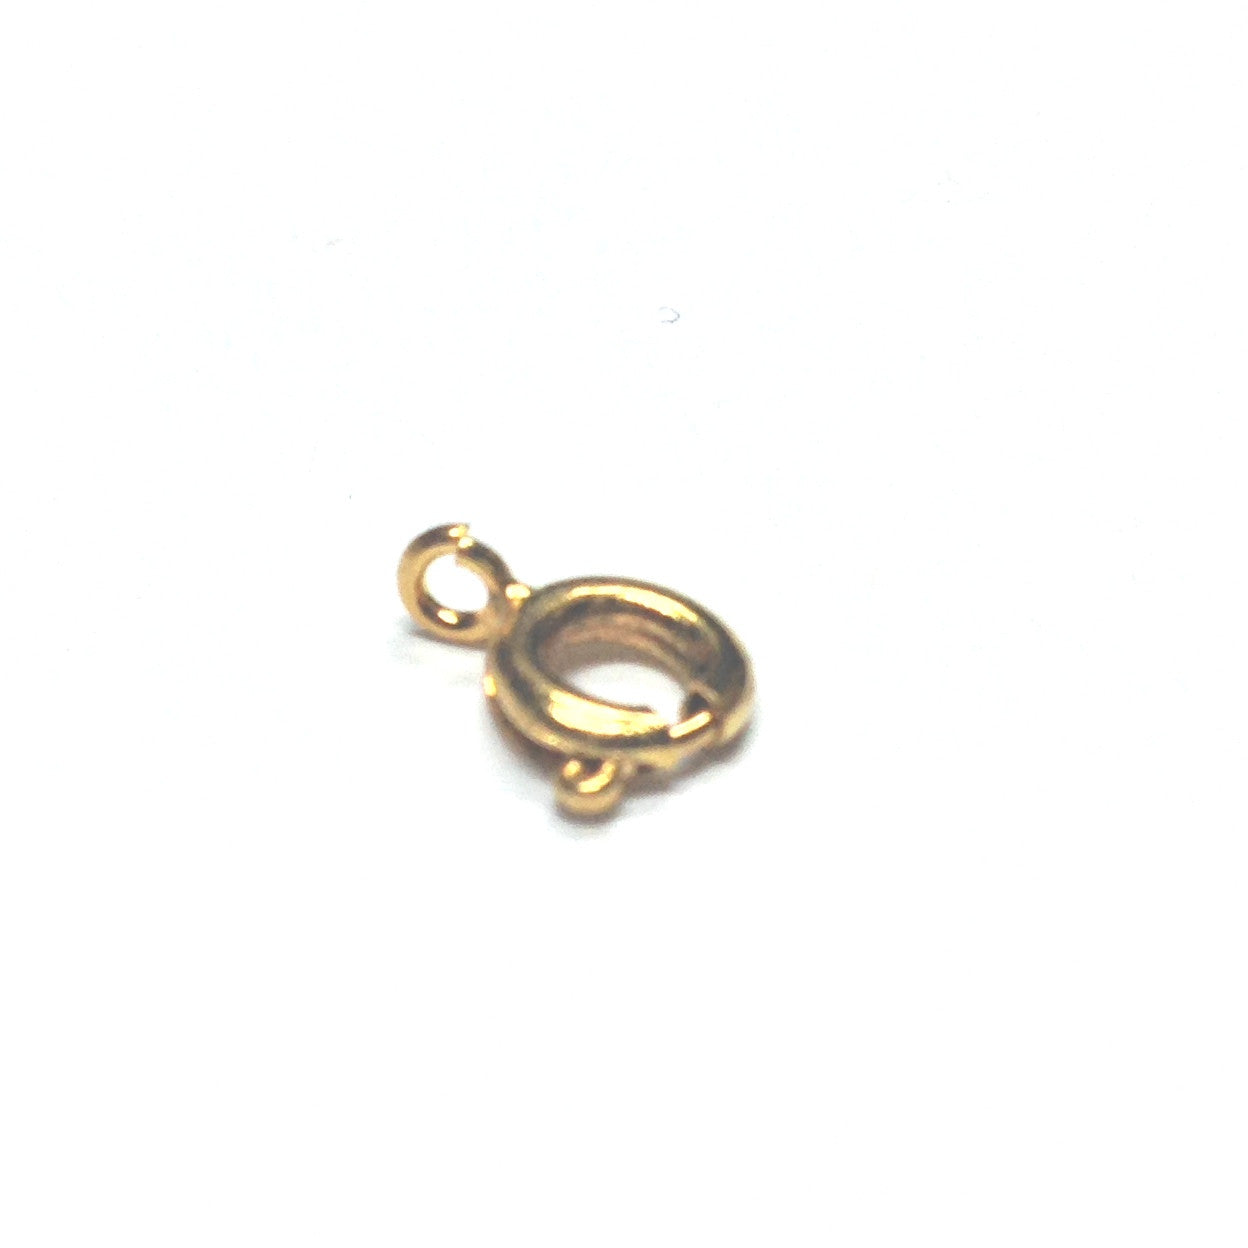 6MM Spring Ring Gold Plate (144 pieces)